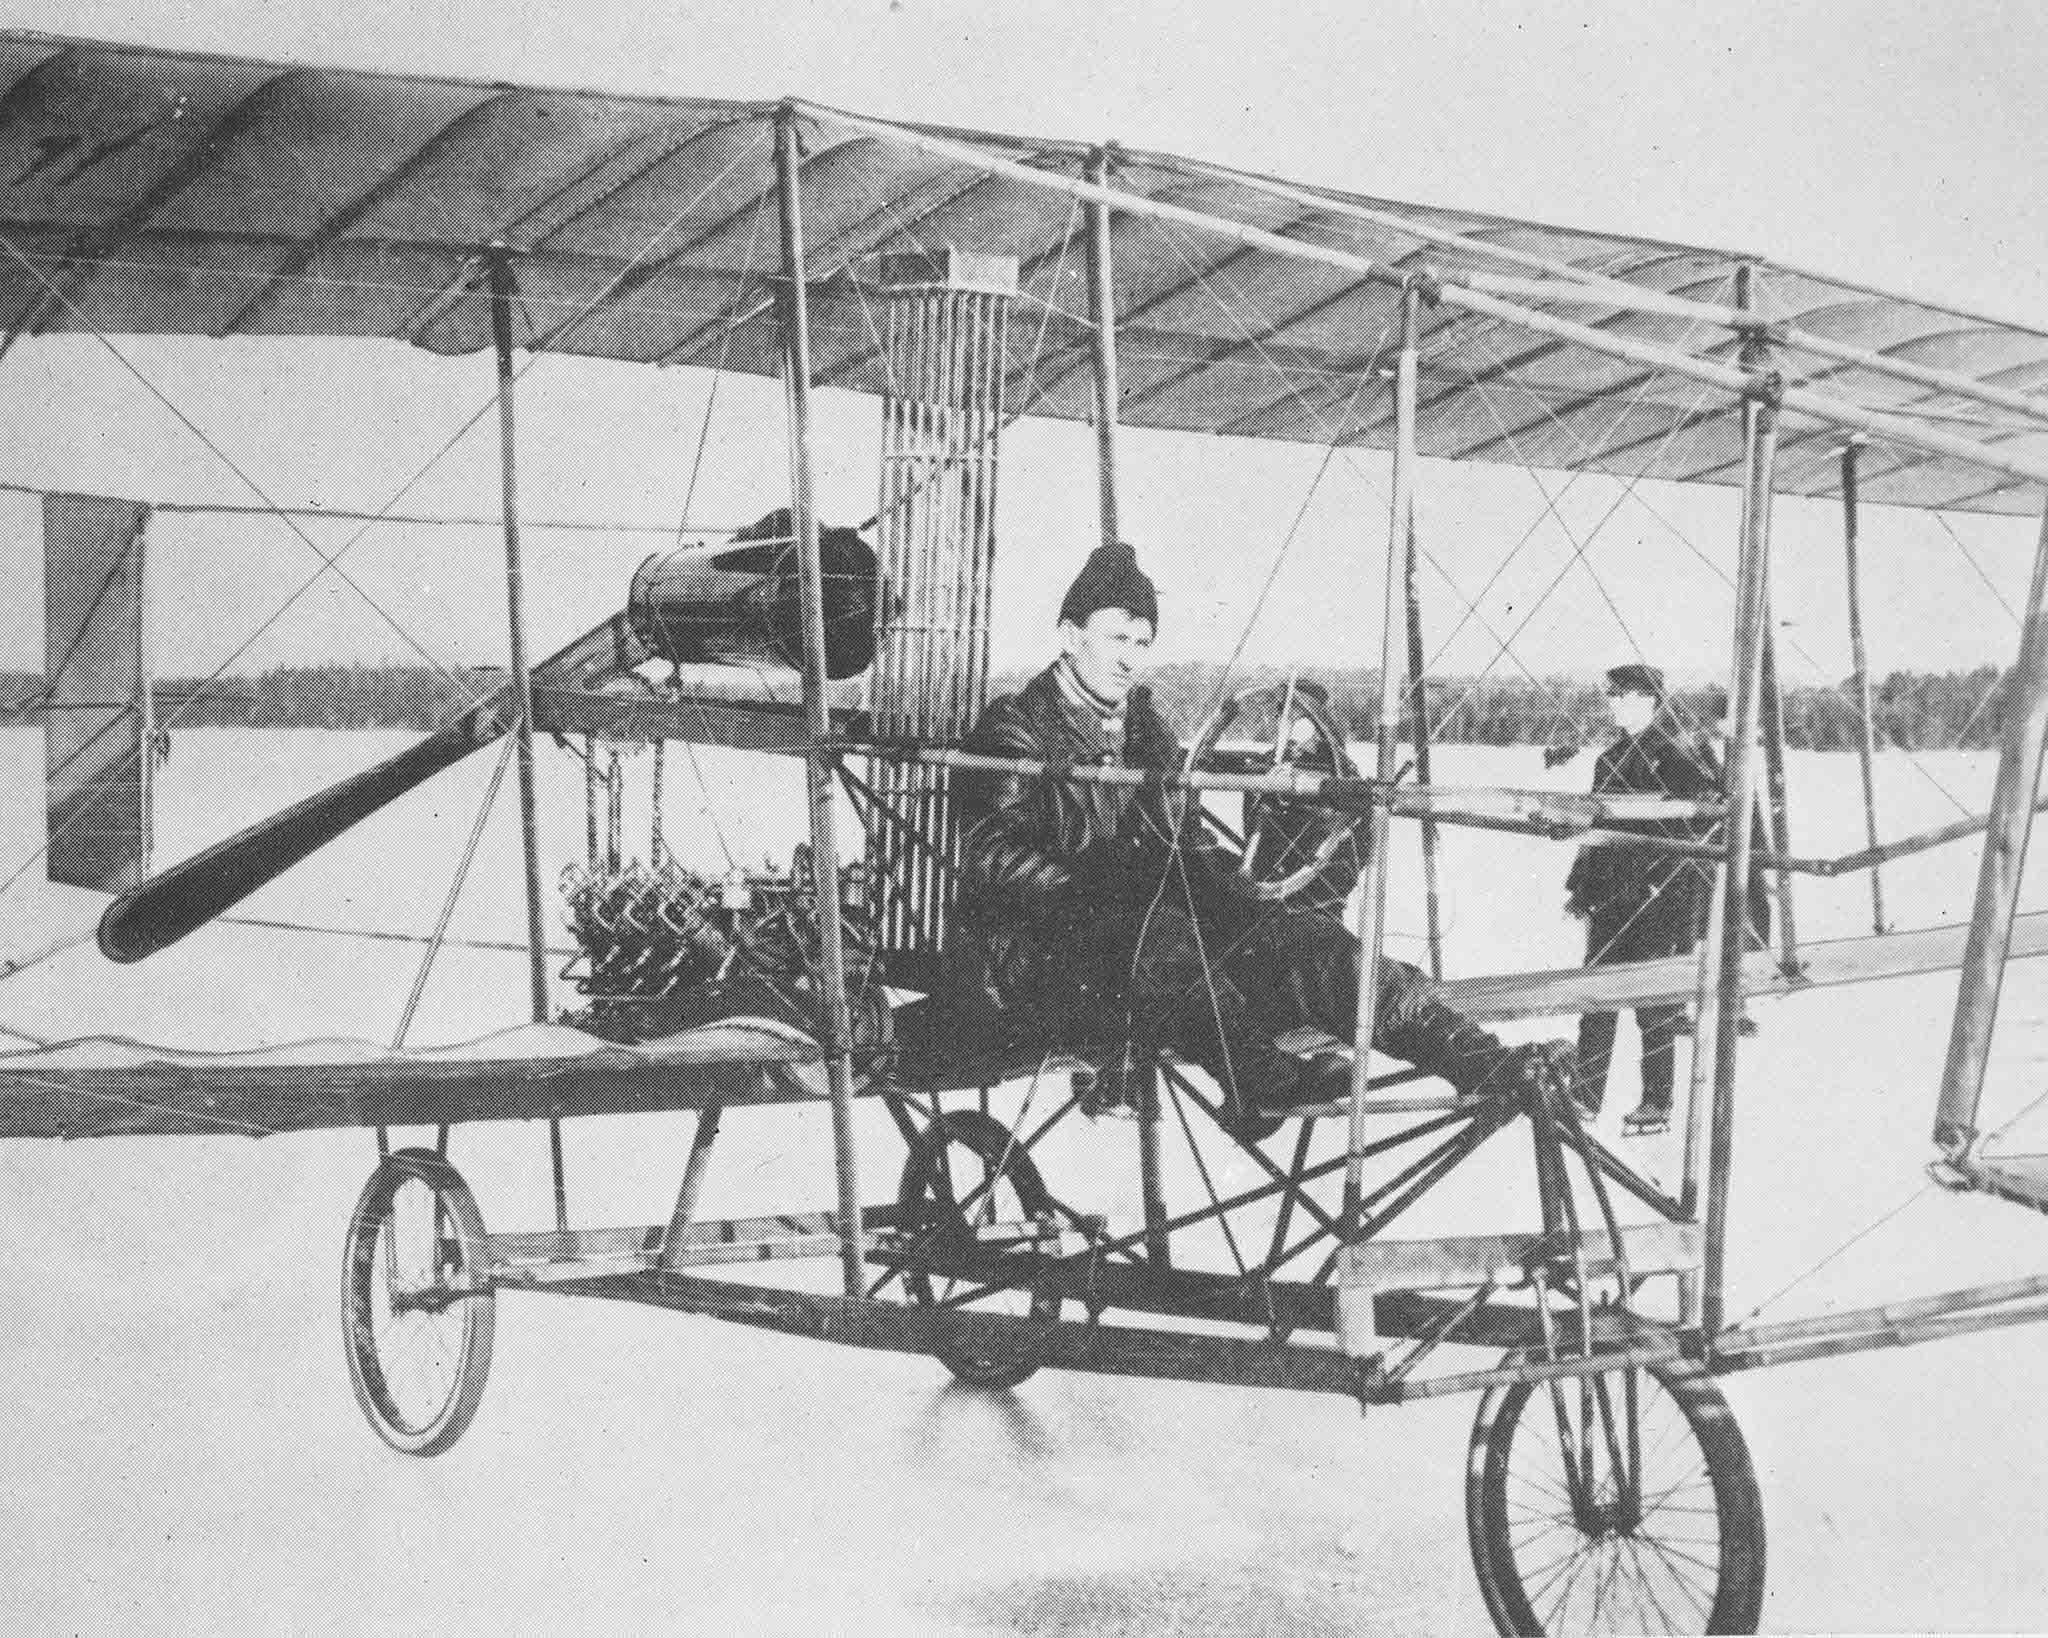 Douglas McCurdy aux commandes du Silver Dart, construit par l'Aerial Experimental Association, le 23 février 1909. PHOTO : , Archives du MDN, RE74-217